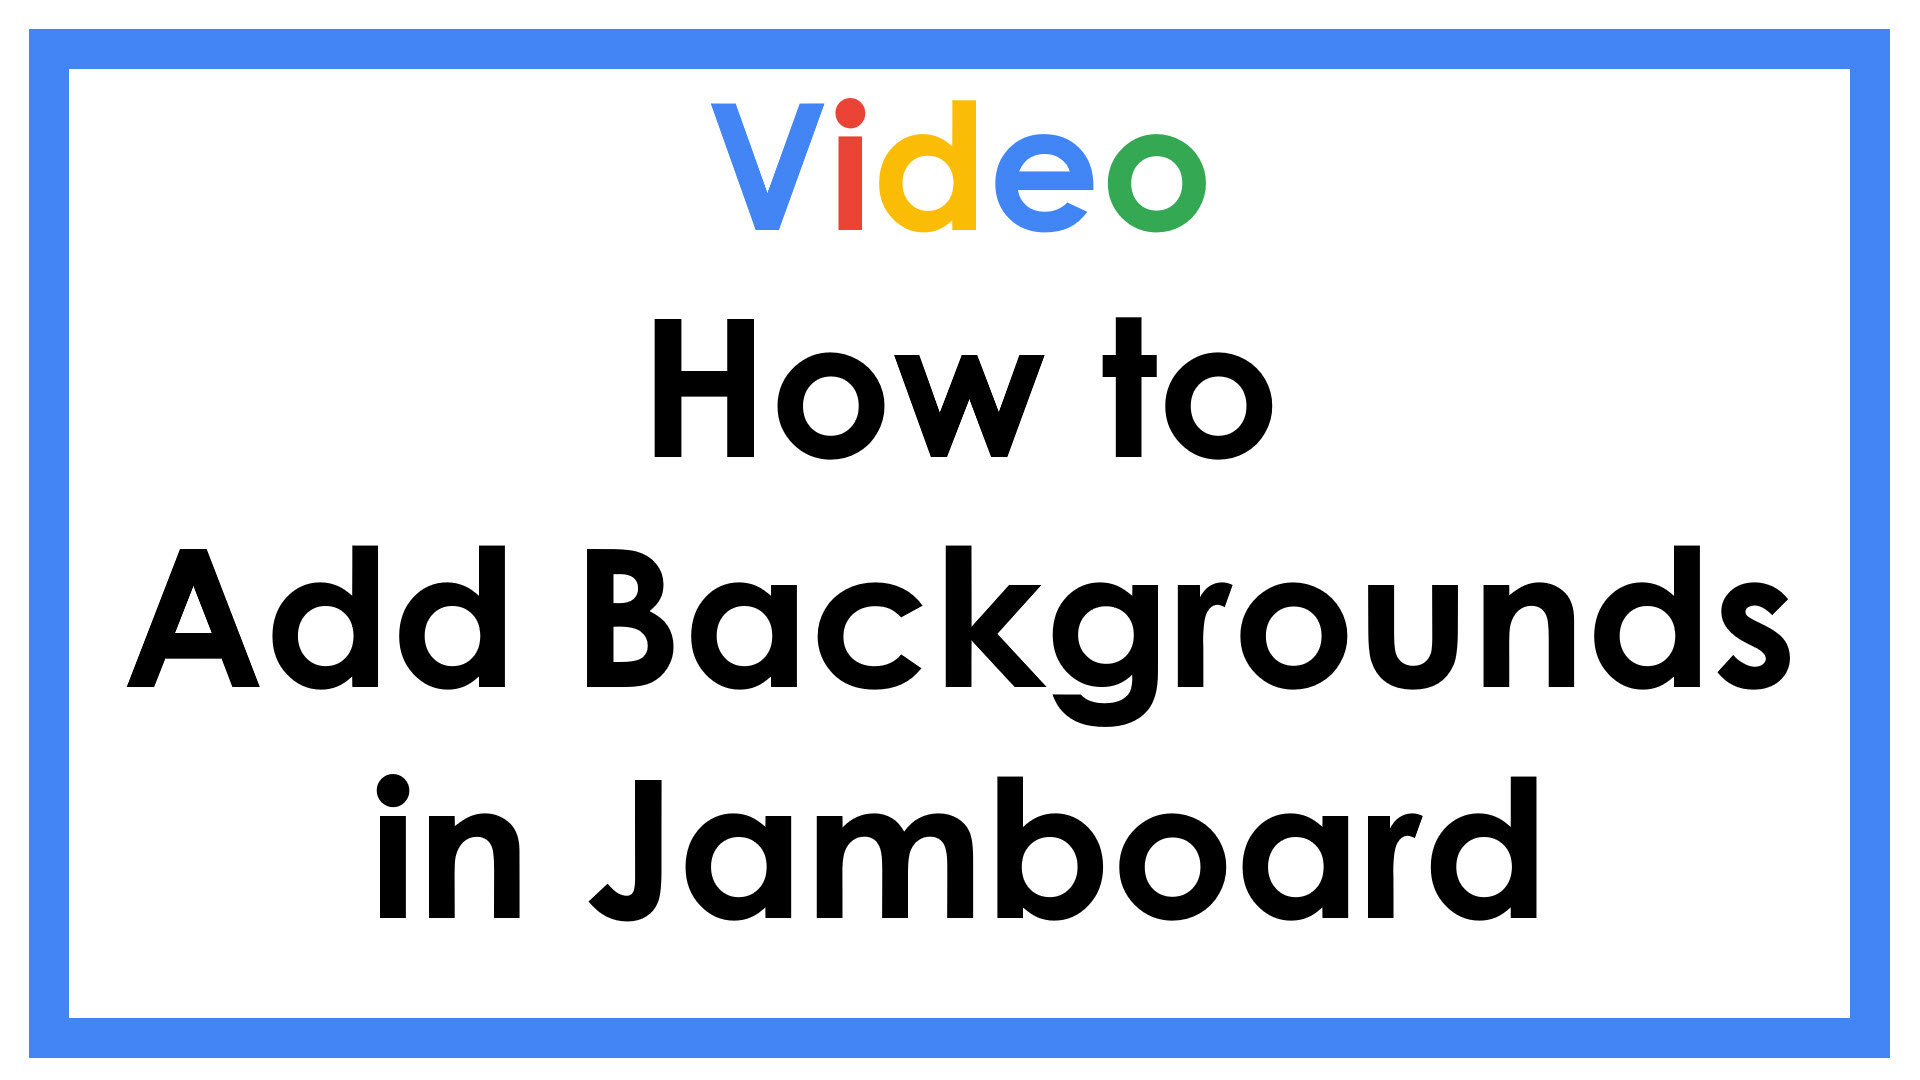 Adding Backgrounds in Jamboard